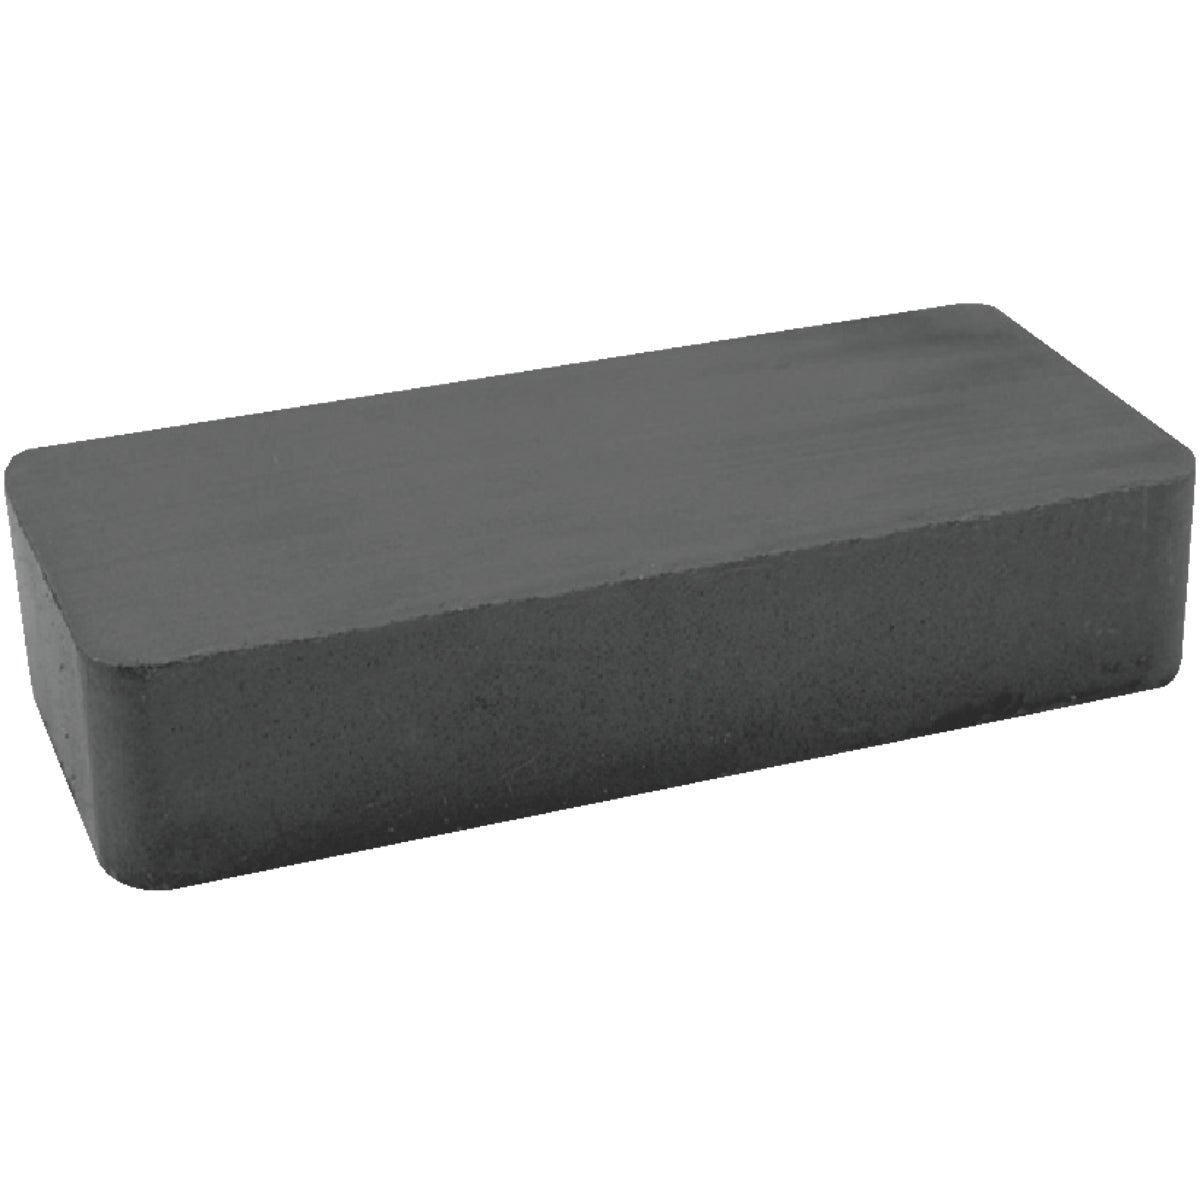 CERAMIC MAGNETIC BLOCK - 07044 by Master Magnetics